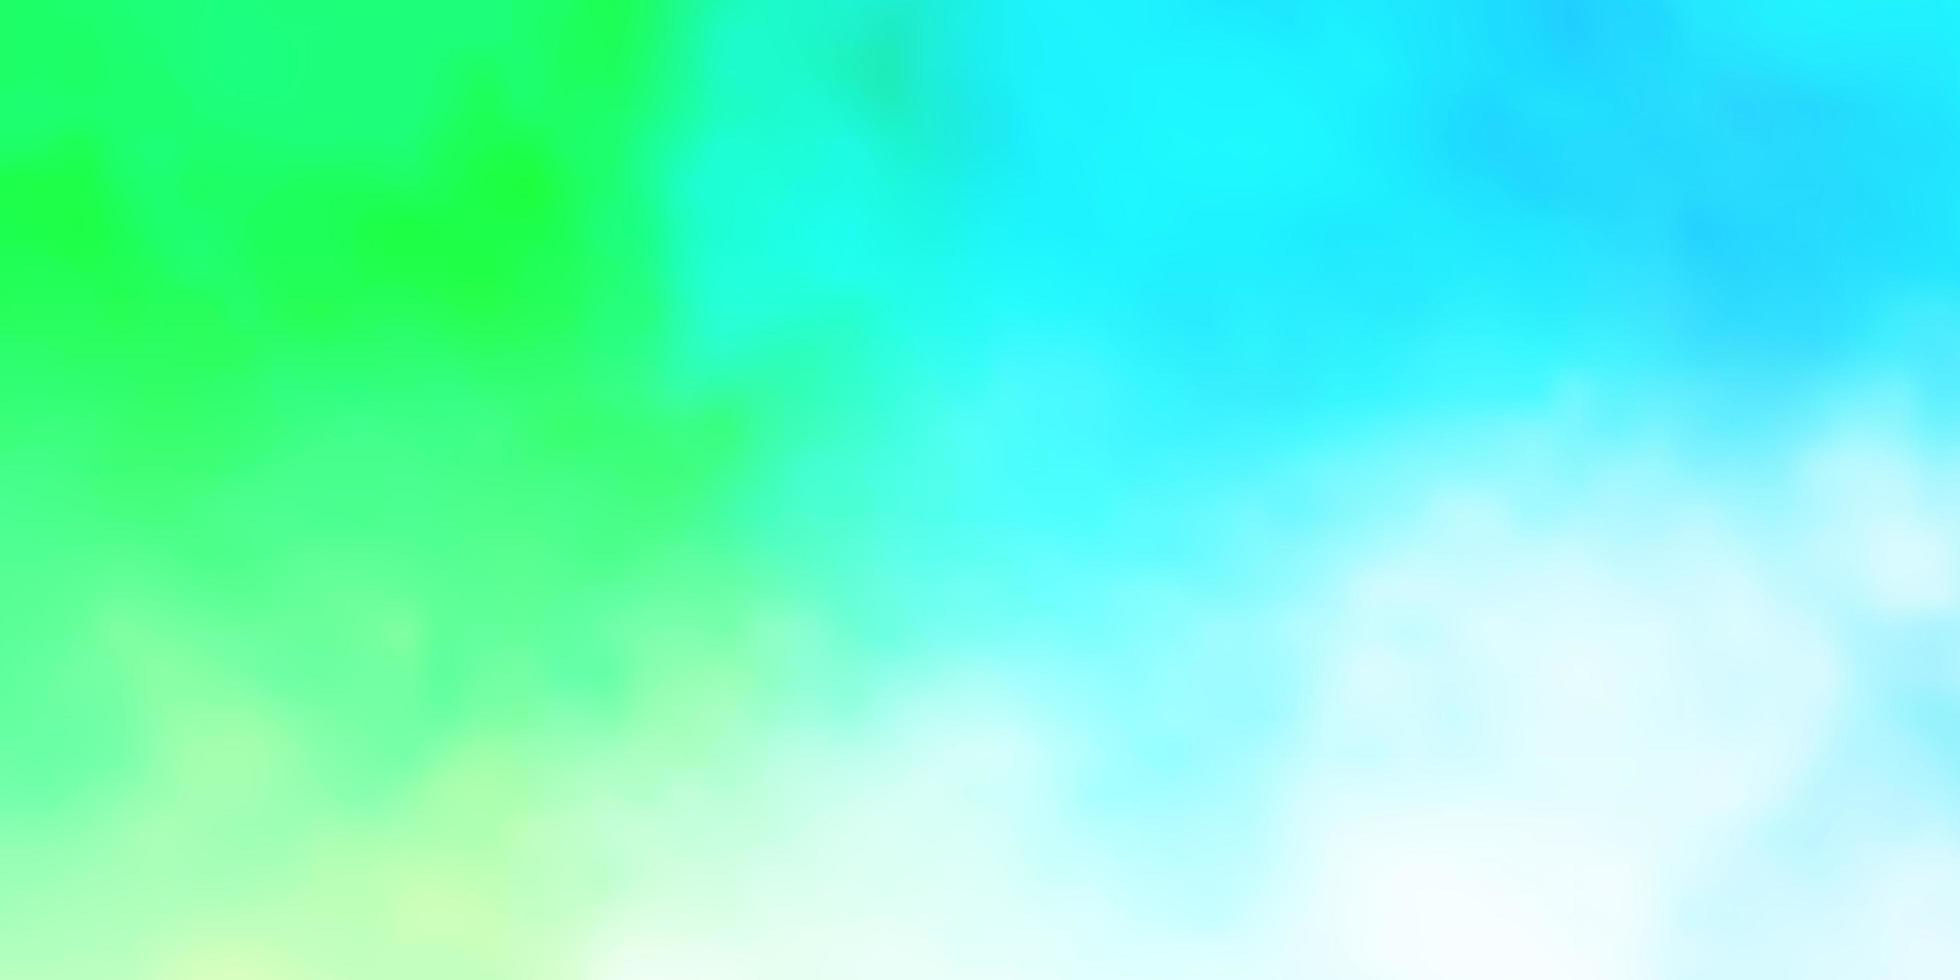 Light Blue, Green vector pattern with clouds.